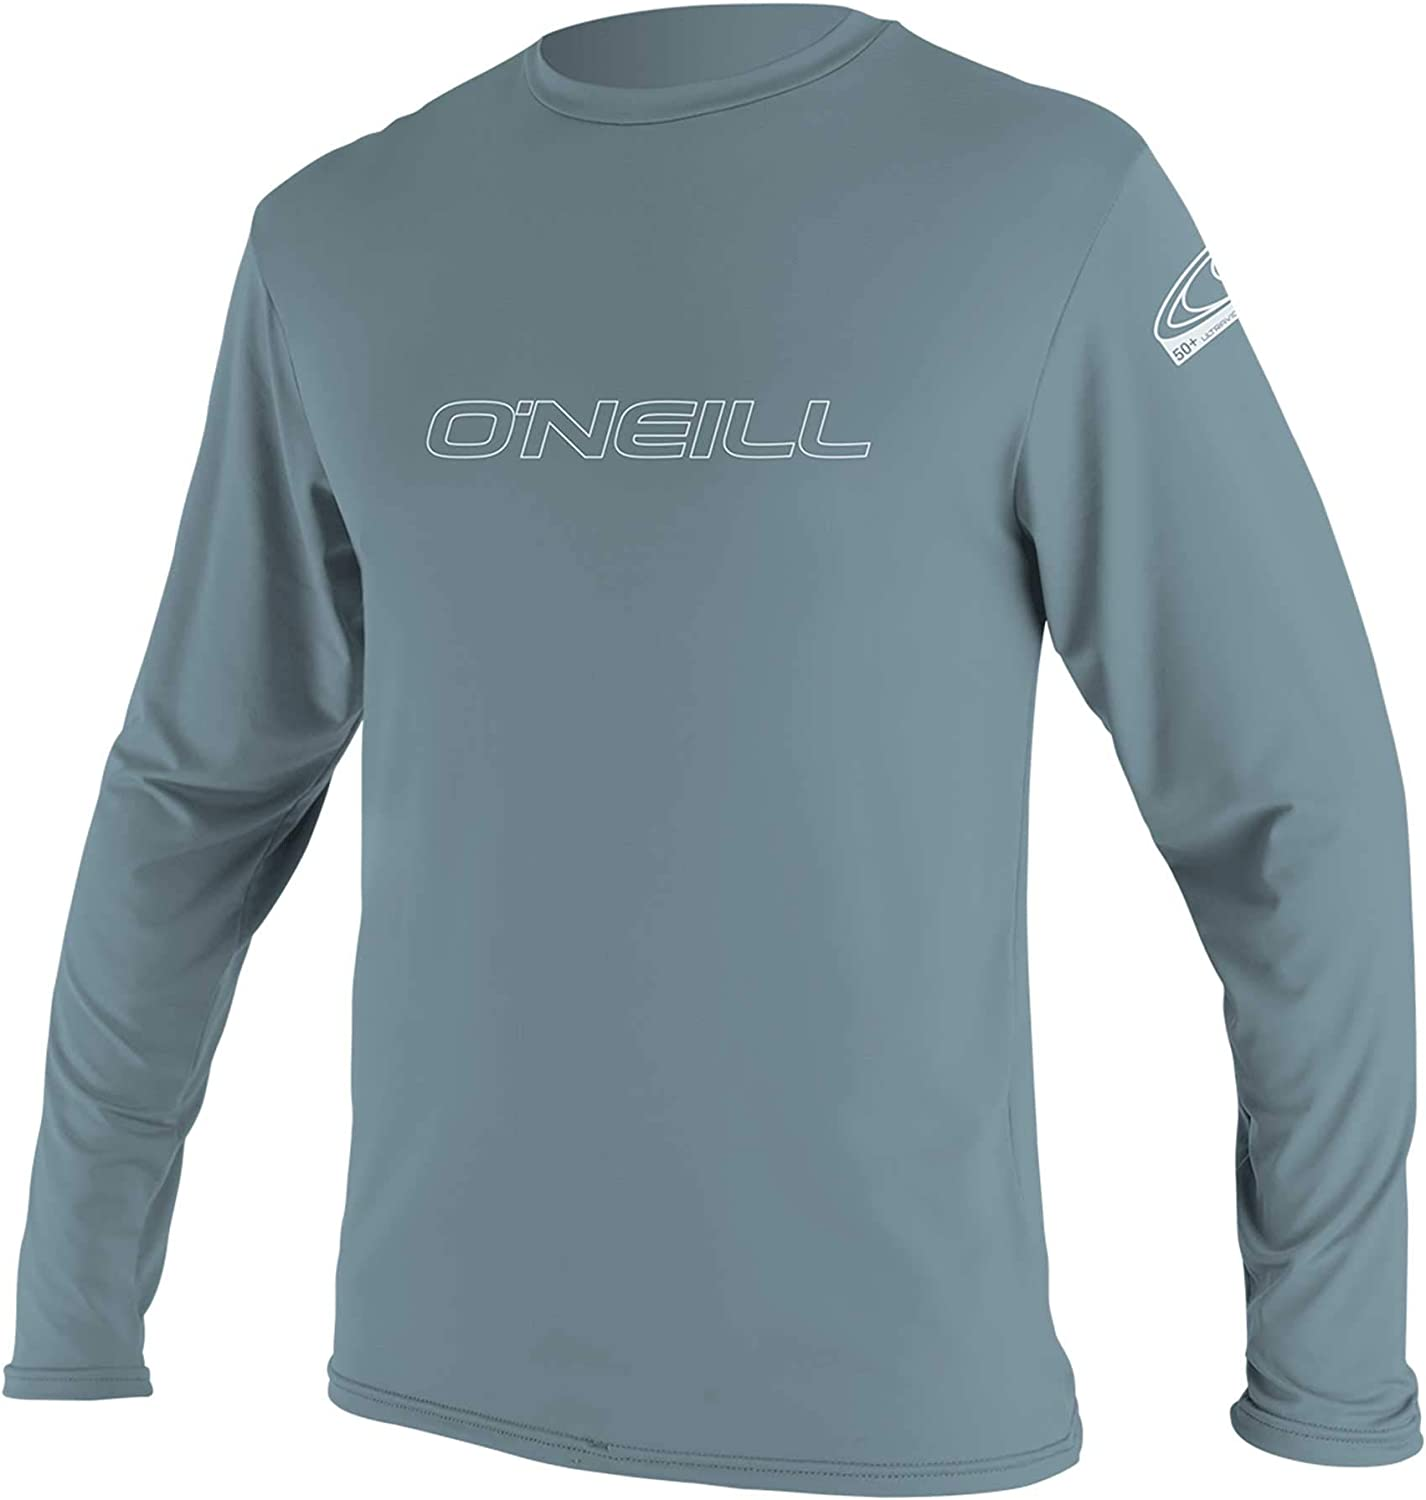 O'Neill Wetsuits Men's Basic Skins 50+ Long Sleeve Sun Shirt